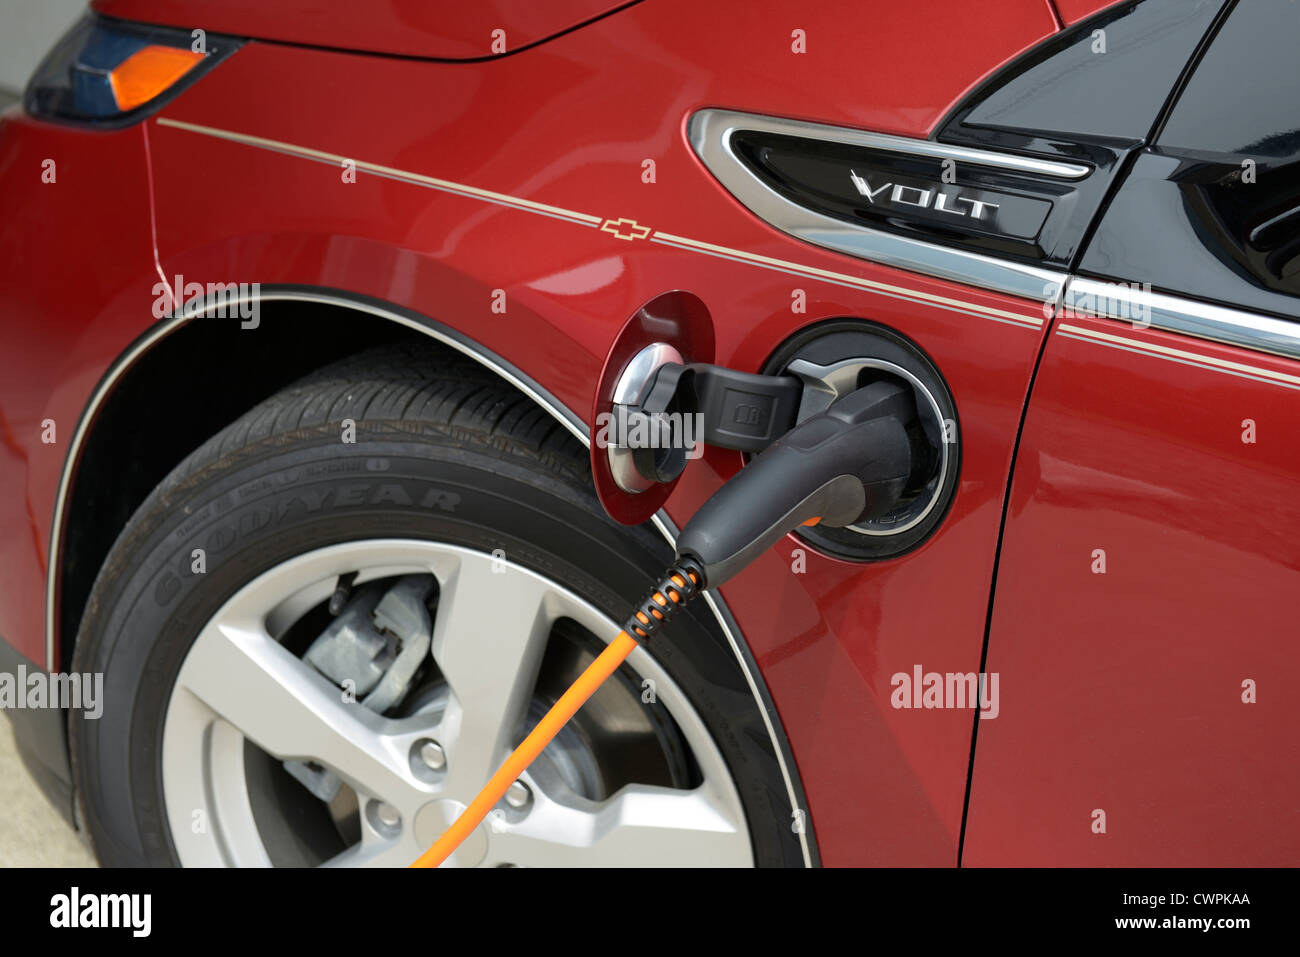 Chevrolet Volt, electric car, recharging - Stock Image